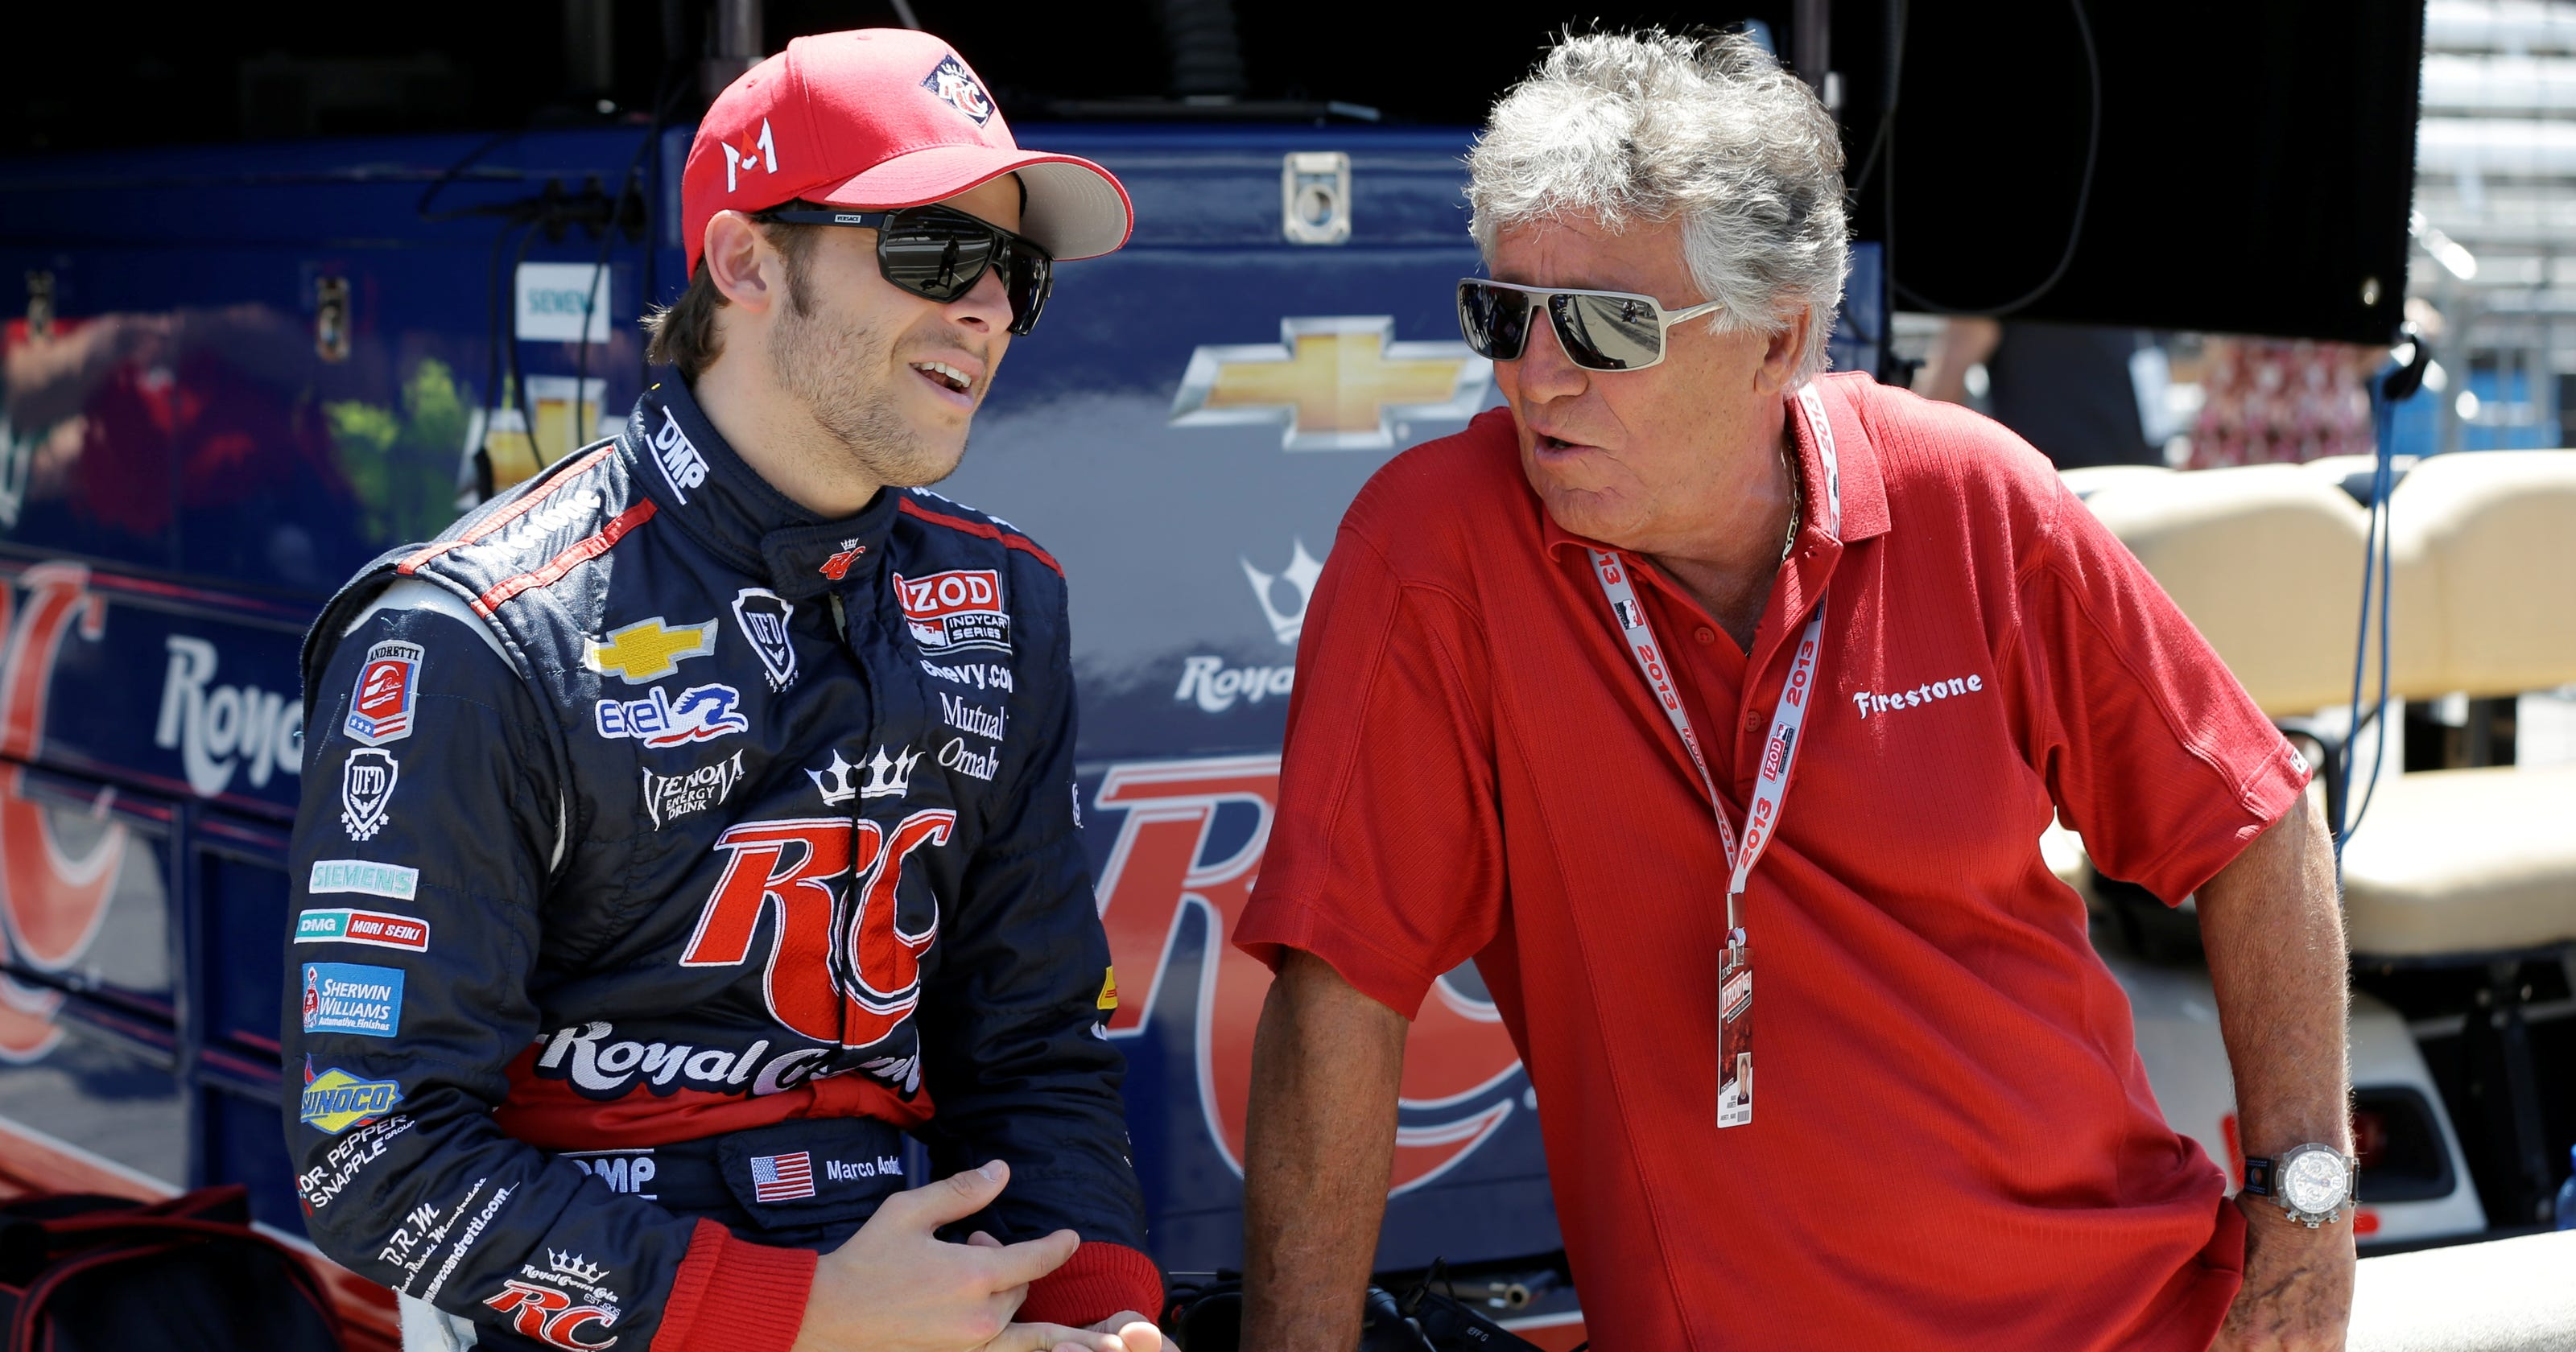 Marco Andretti fosters family atmosphere in Pennsylvania